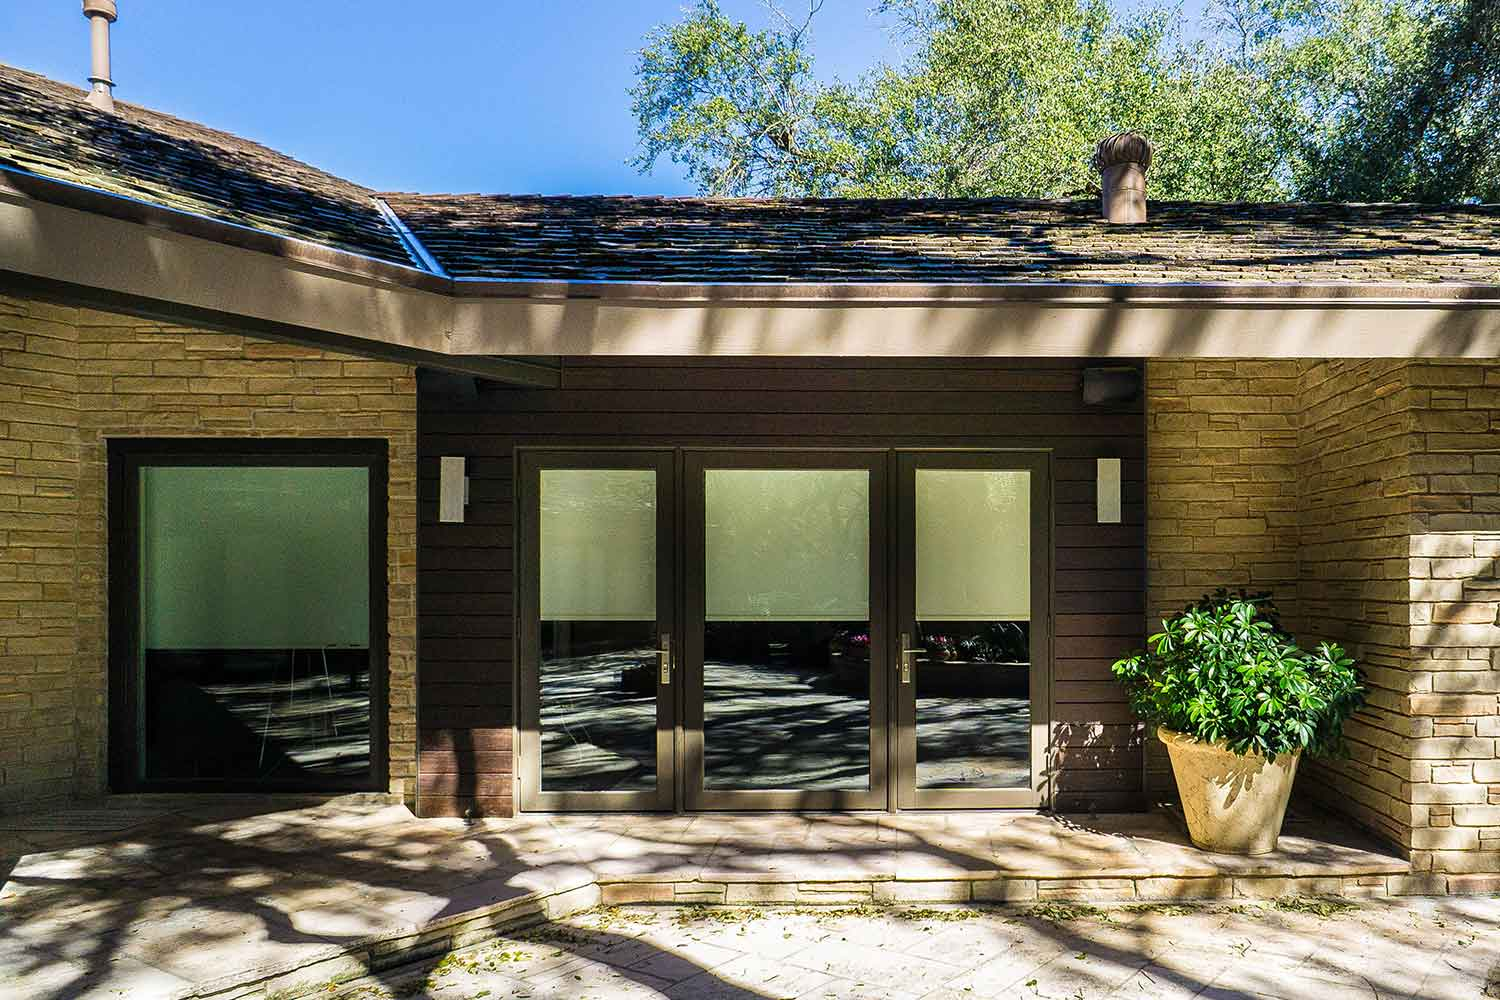 Within the vibrant neighborhood of Olmos Park in San Antonio, Texas, rests this beautiful ranch-style stone home.  When architect Elizabeth D. Haynes was given the task of designing the remodel and new addition to the home, she turned to Voyles Orr Construction to make the dream a reality.  Haynes chose dassoXTR RainClad Siding for the exterior around the home. This product is made from Fused Bamboo® that uses a clip system to produce a seamless rainscreen siding.  The equally stunning and strong Ipe-like appearance gives a wonderful contrast to the stone exterior.